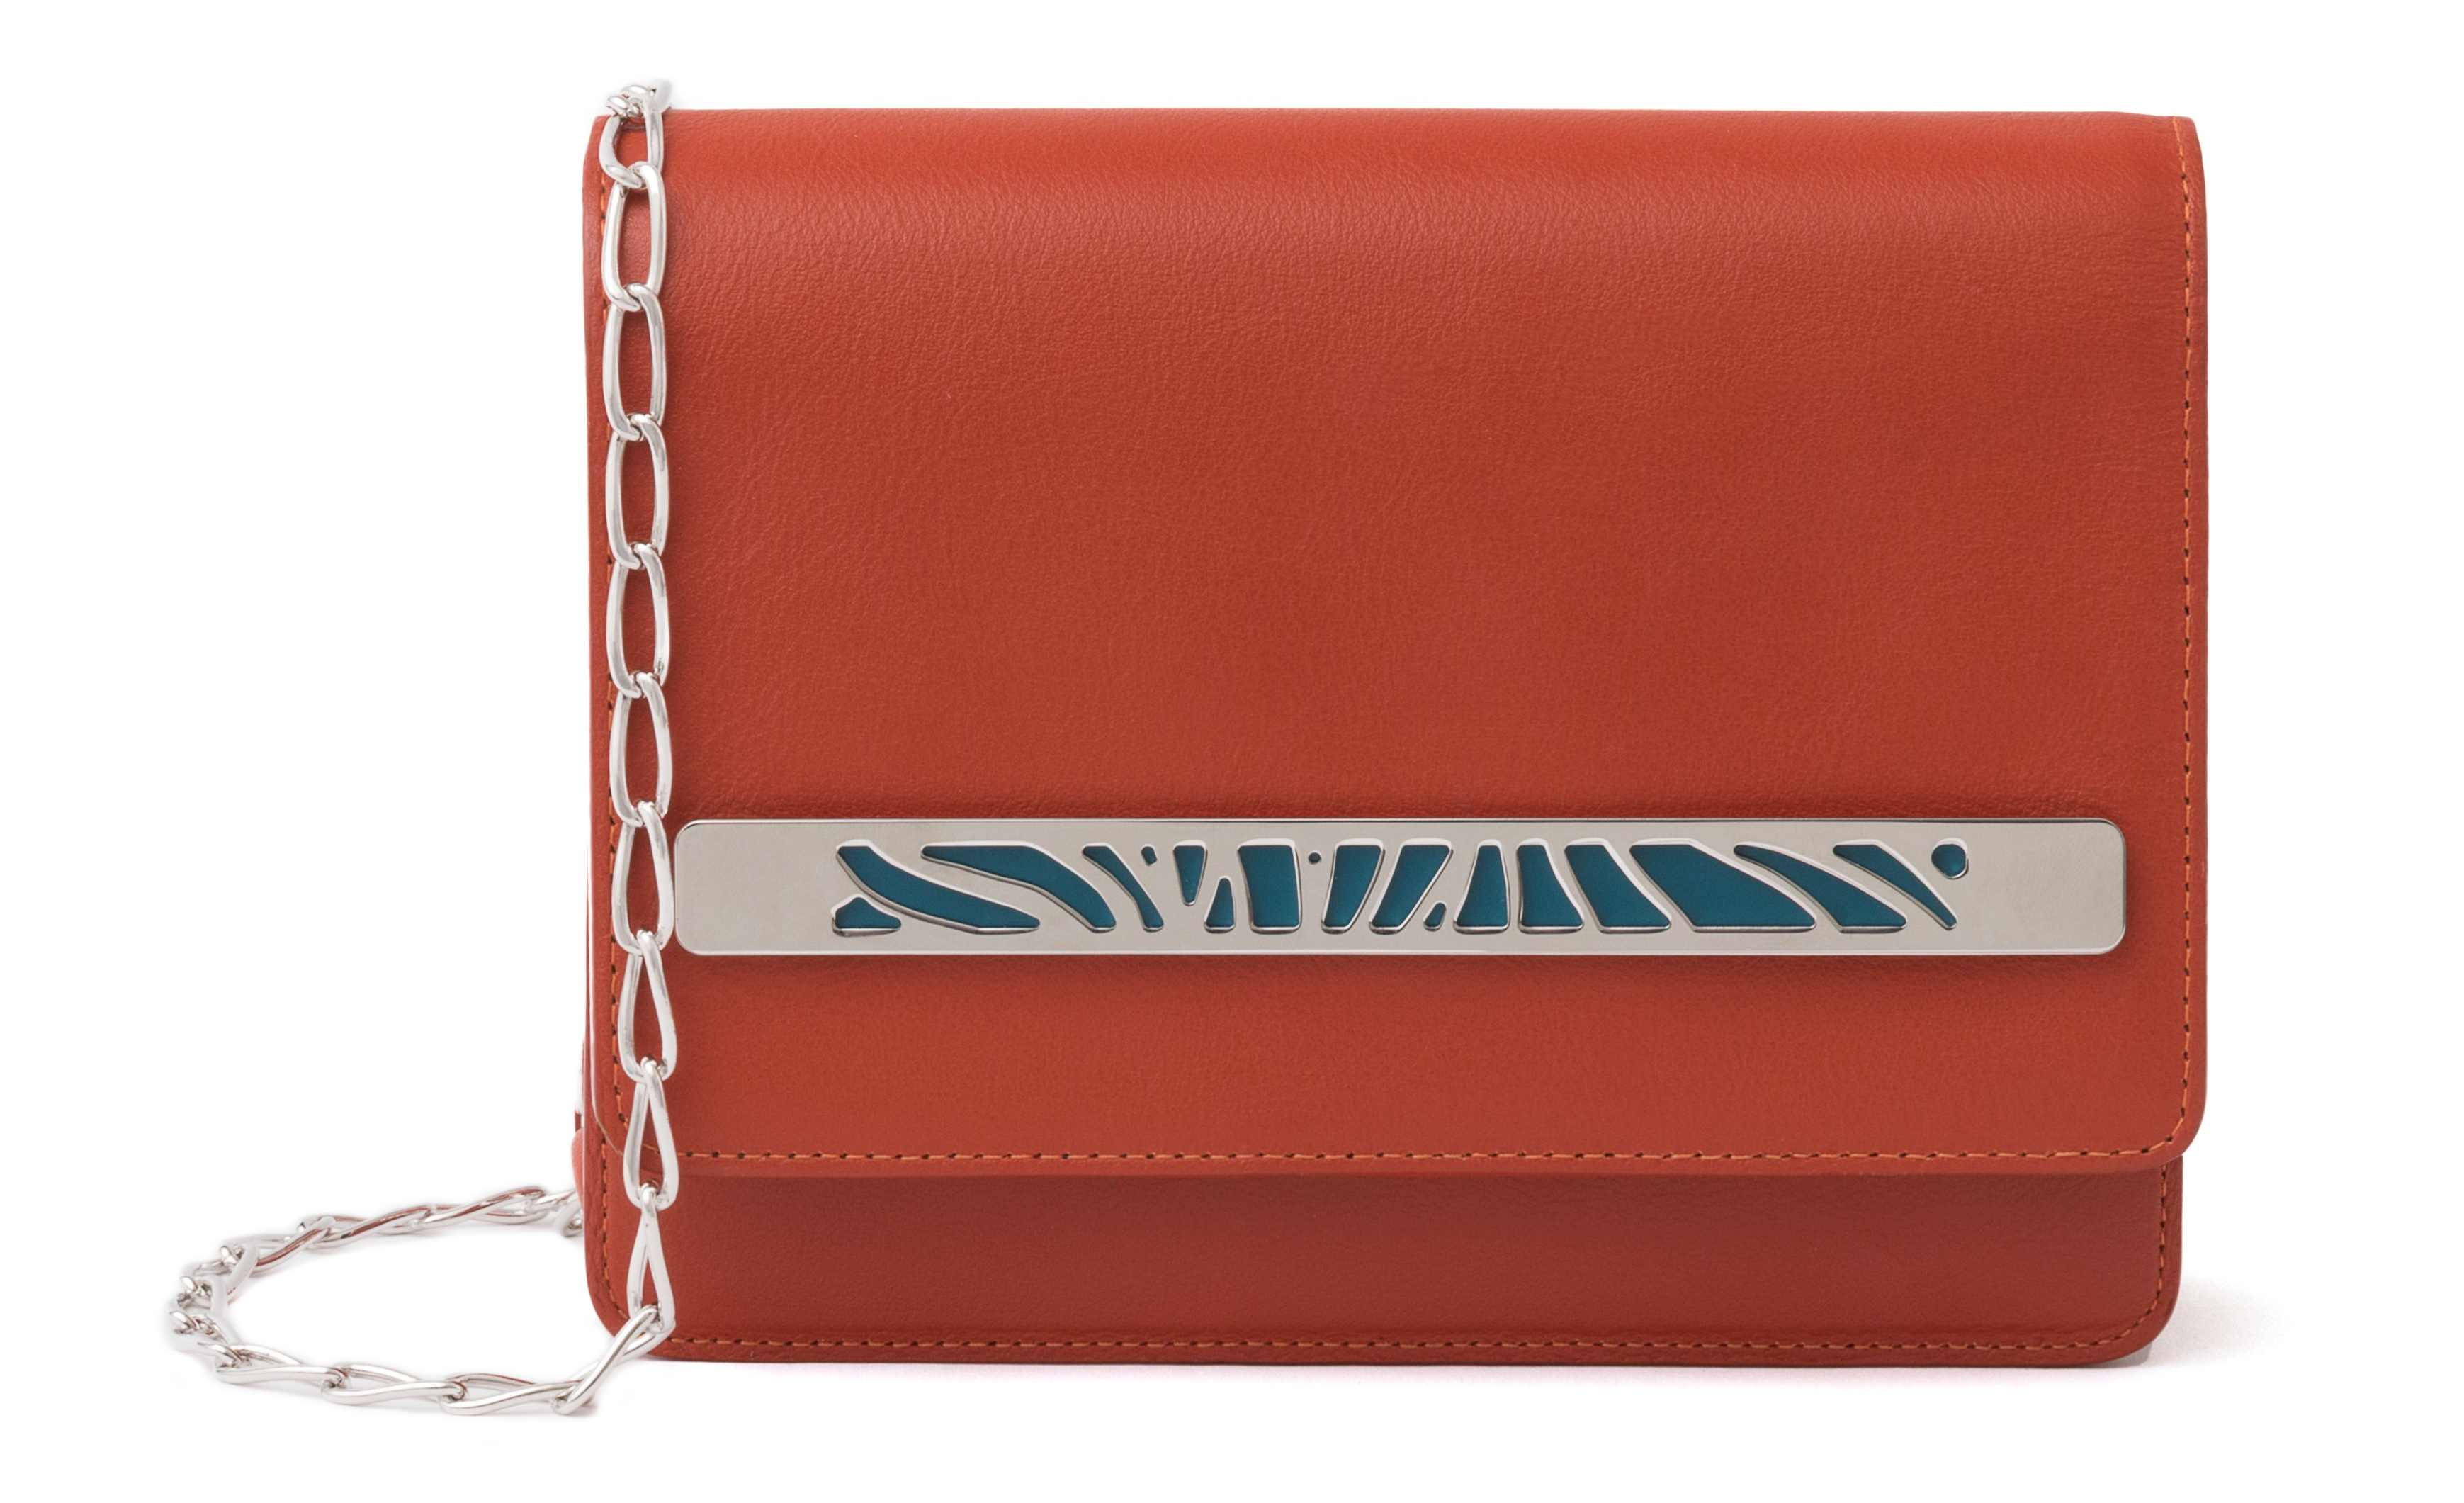 Les Georgettes Le Mini Bijoubag Rust with Silver Band